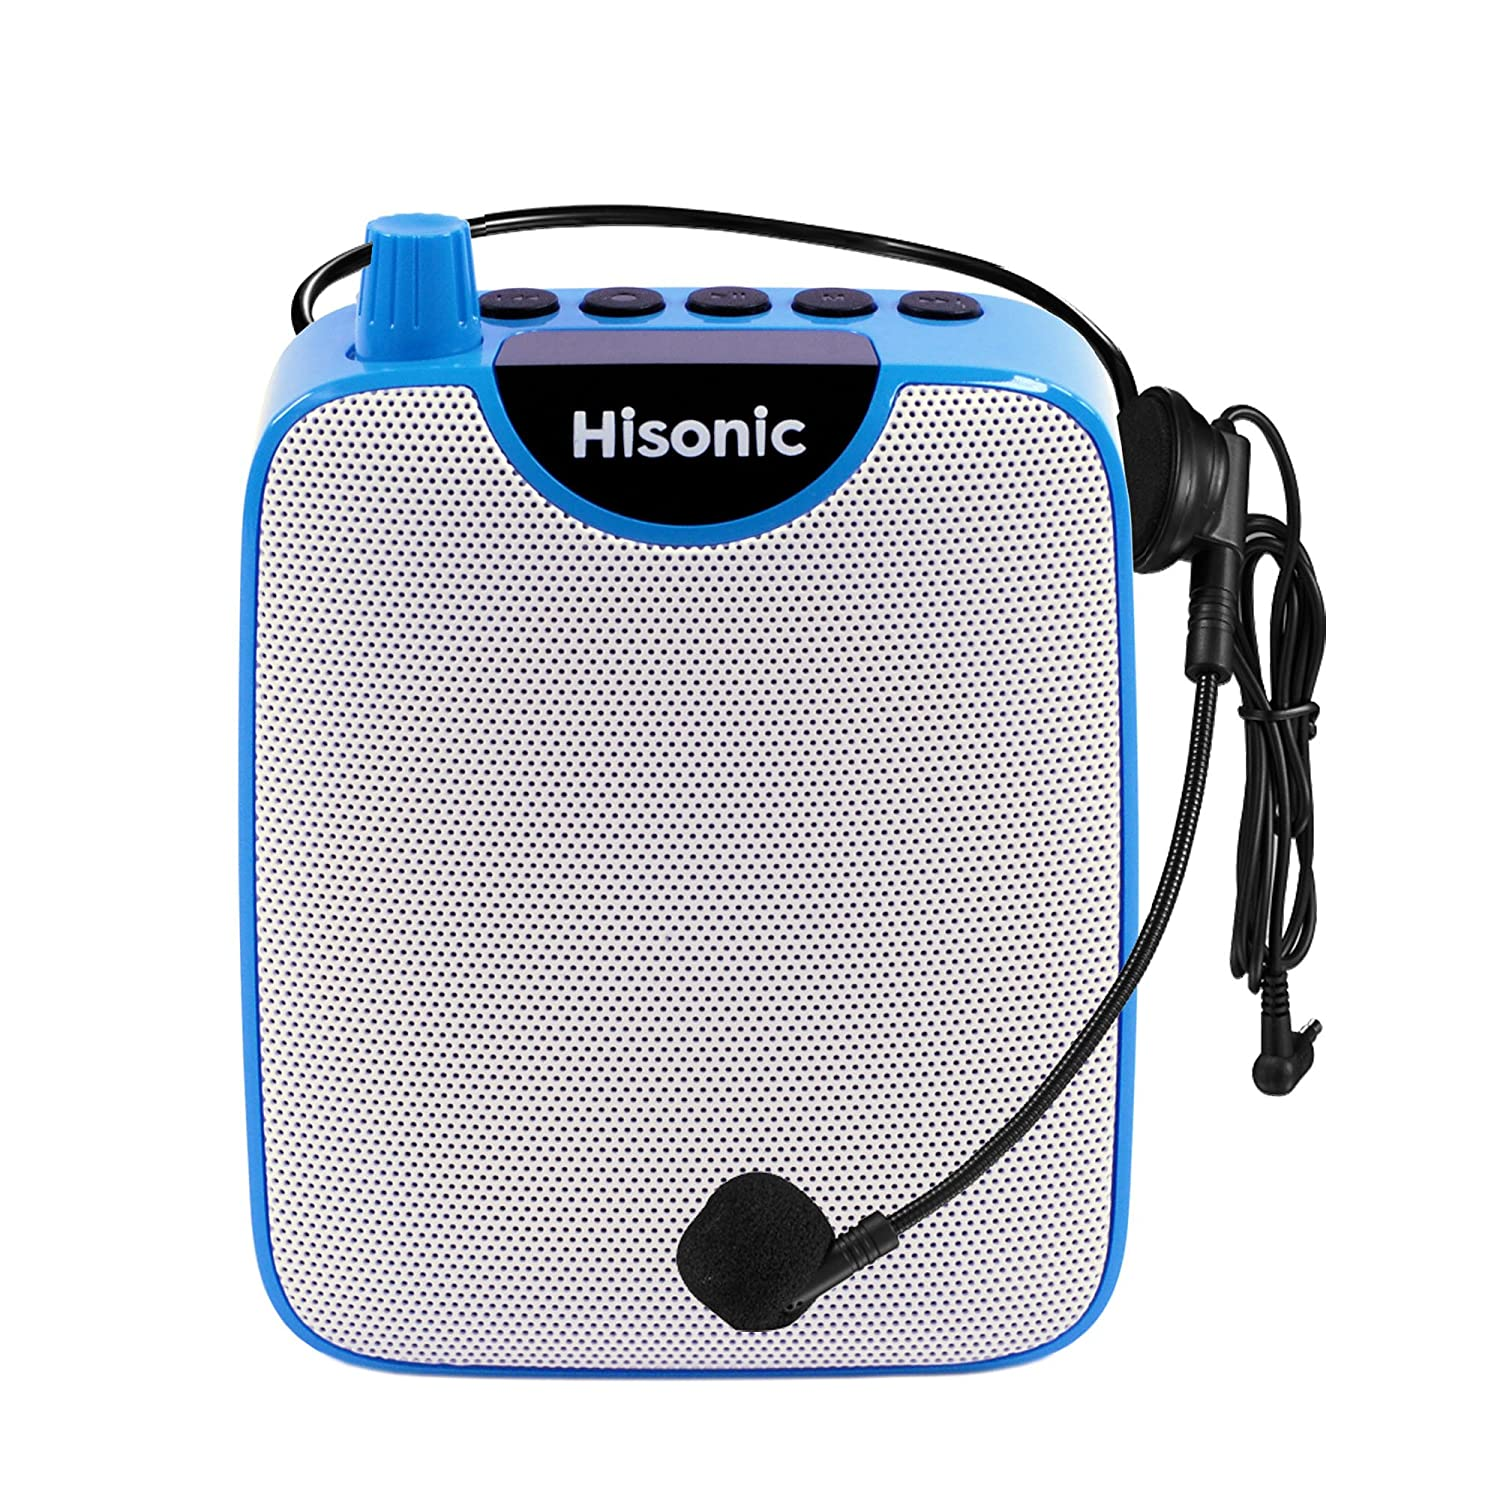 Hisonic HS122BT-HL Portable and Rechargeable PA System with Dual Wireless Microphones & Bluetooth Connection HS120BT-HL